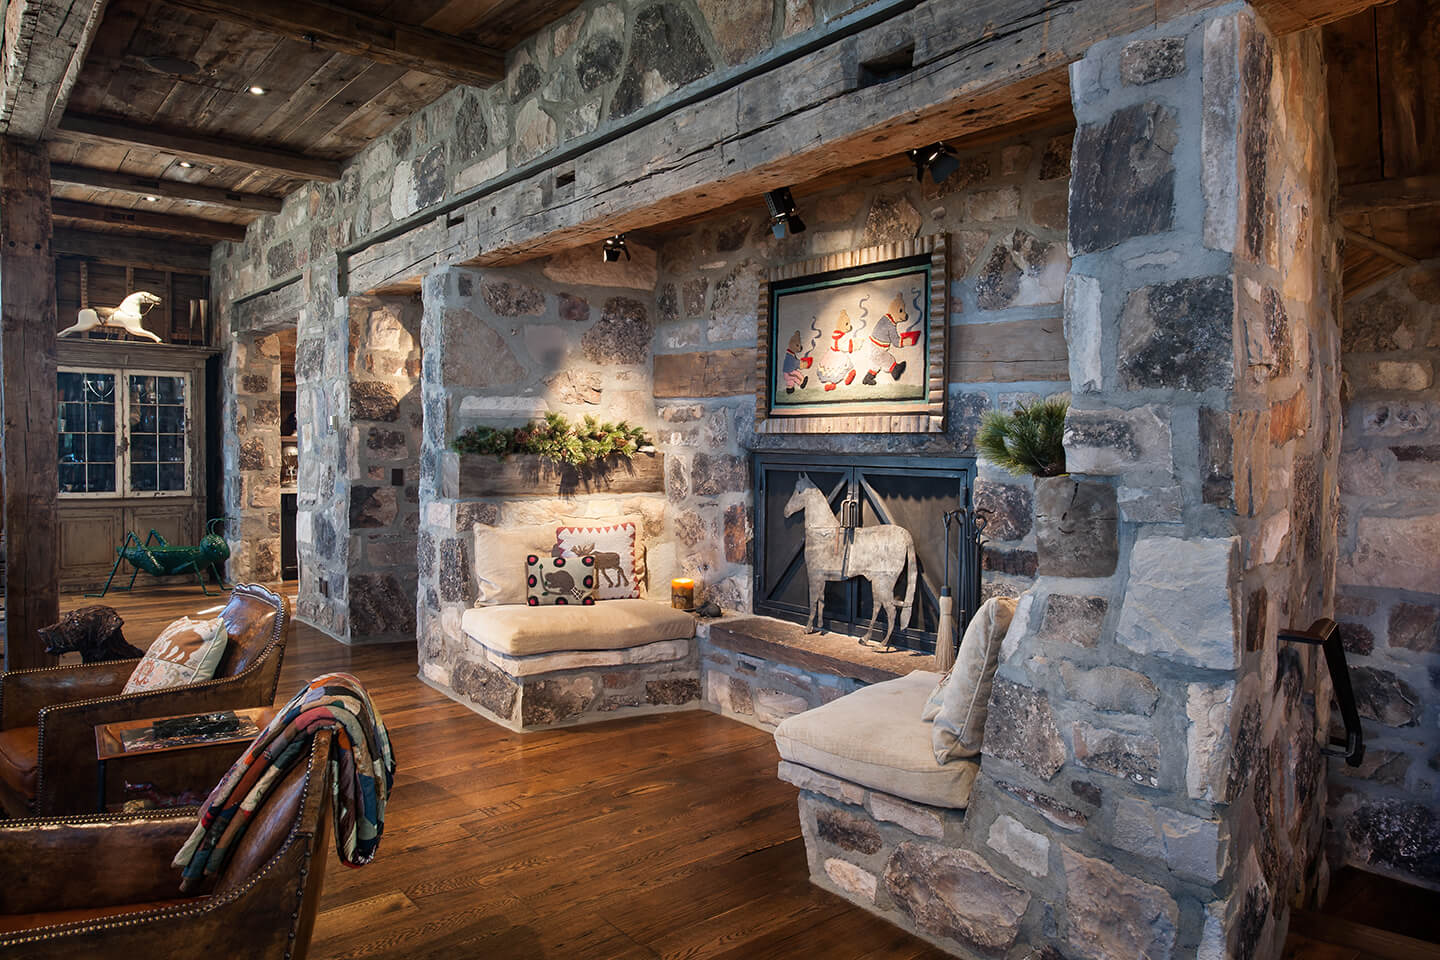 Rustic stone fireplace with a sitting area